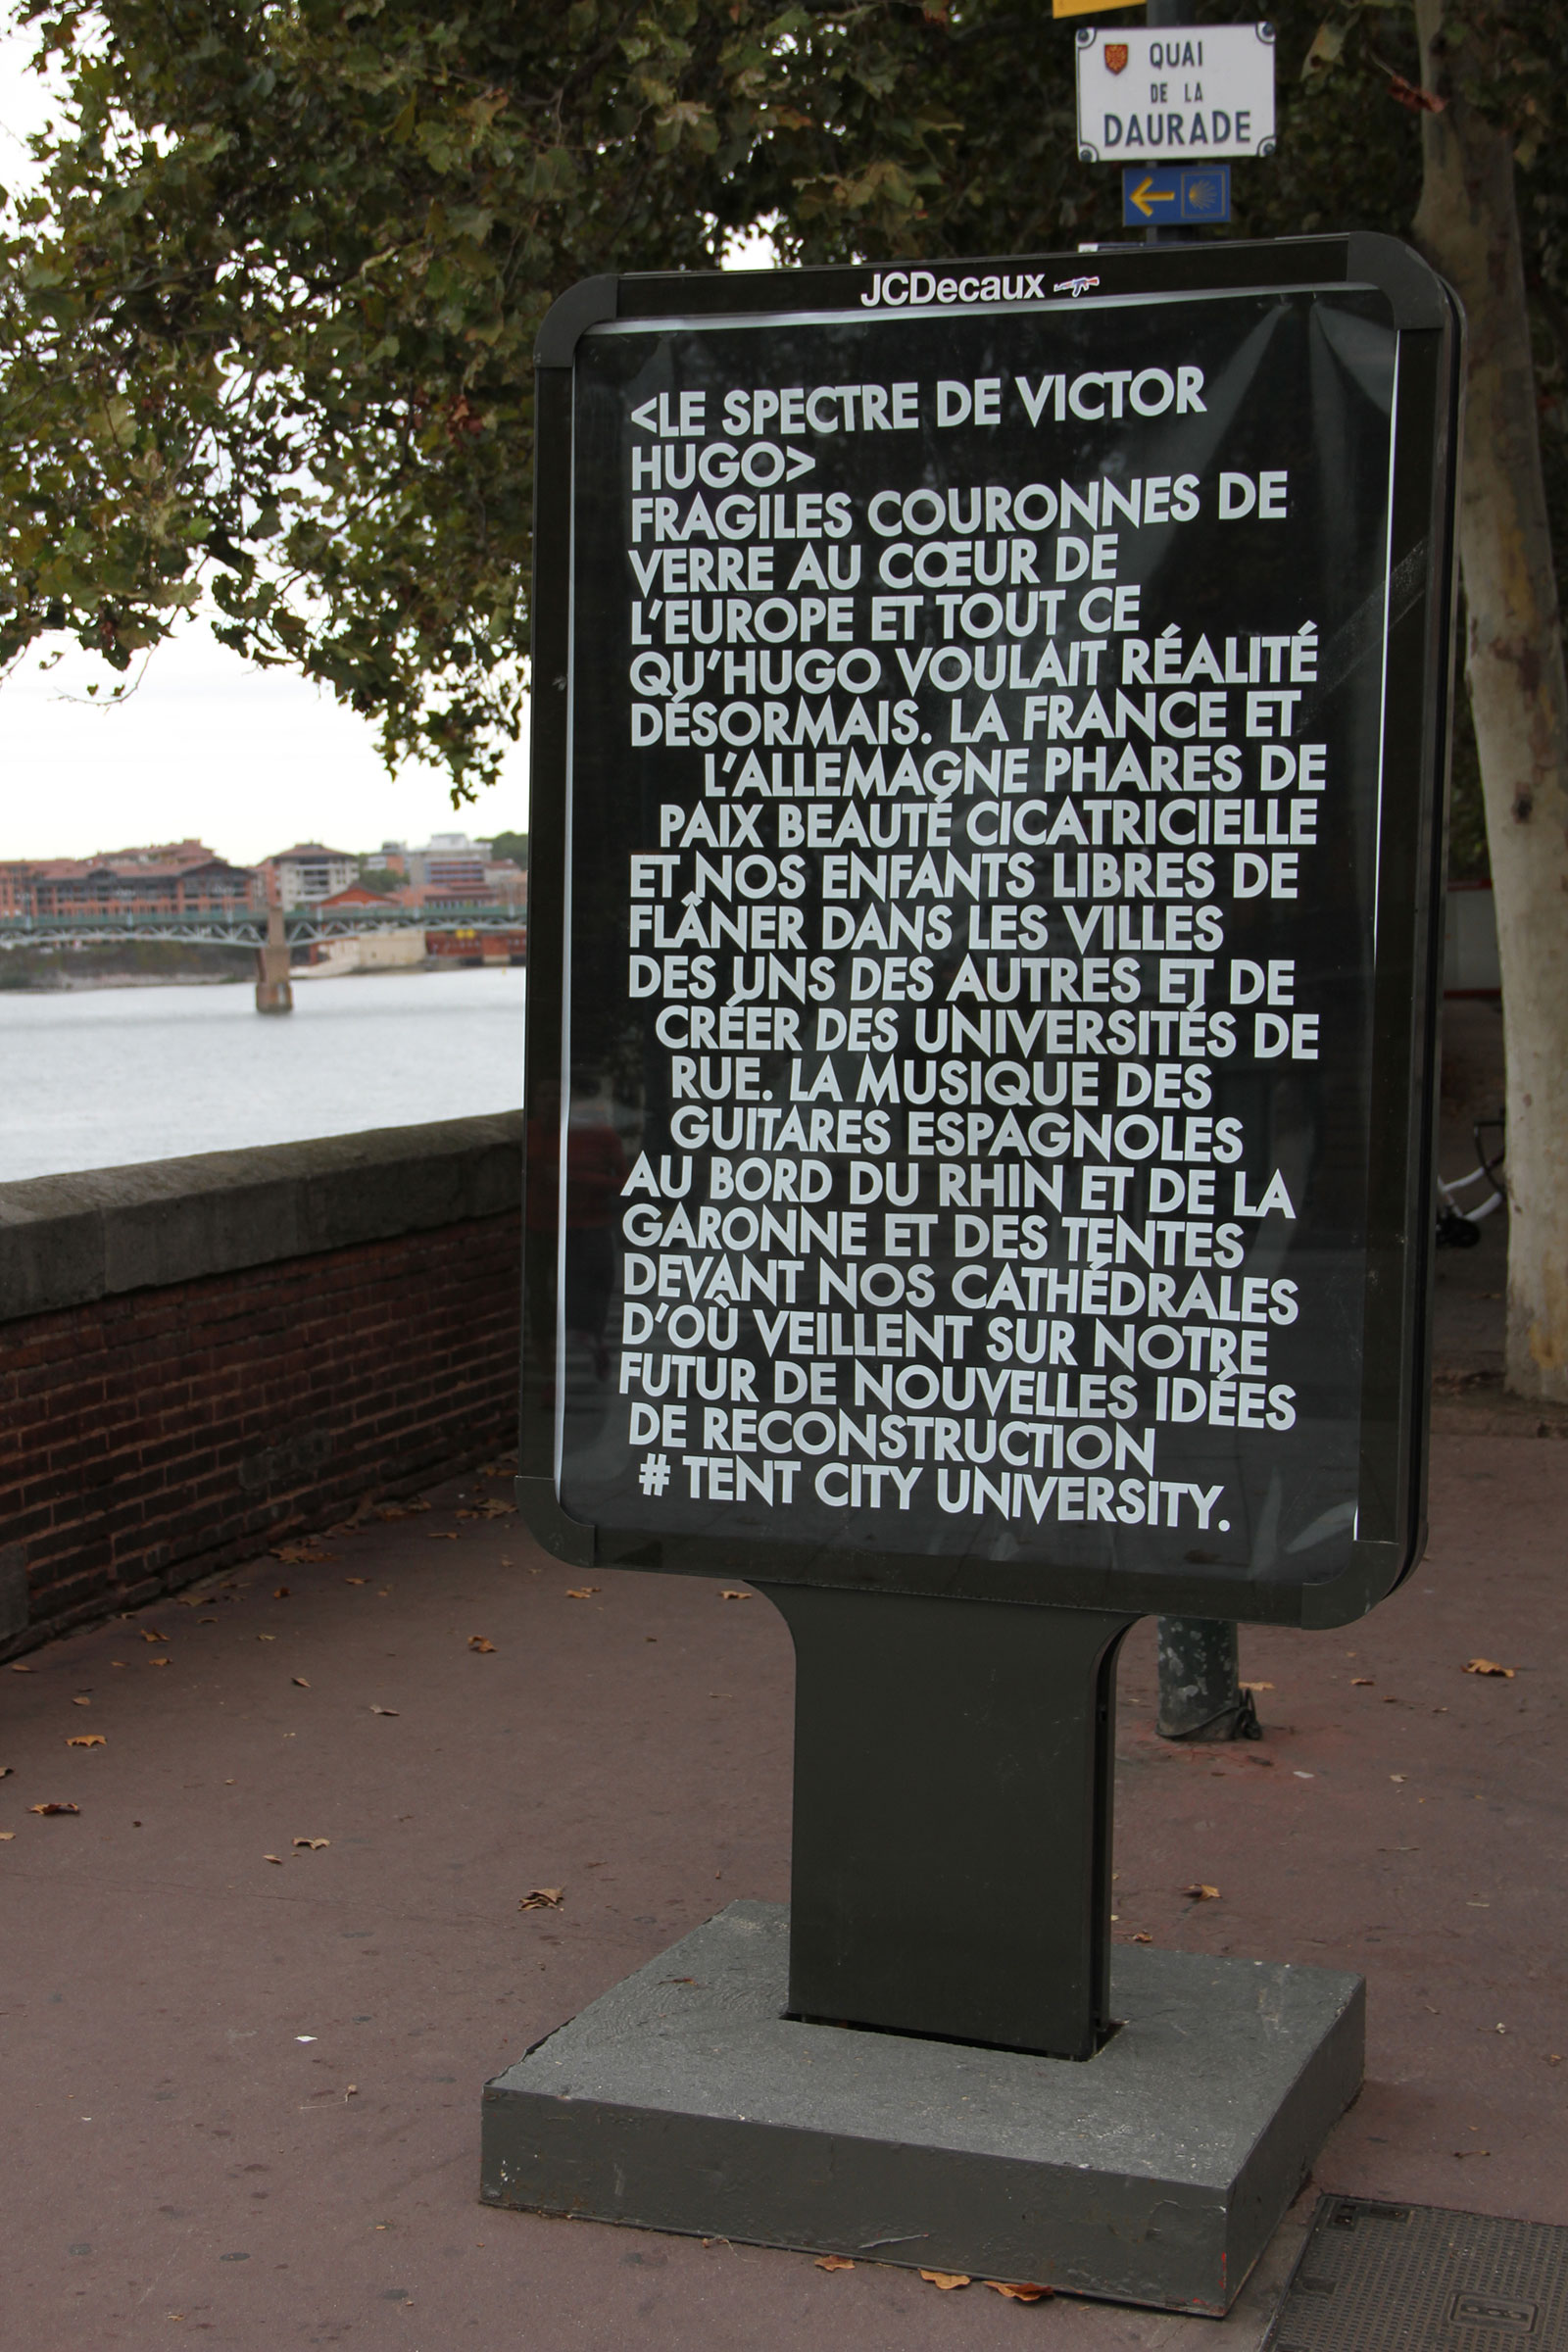 TOULOUSE-INSTALLATION-SHOT-2-FRENCH.jpg